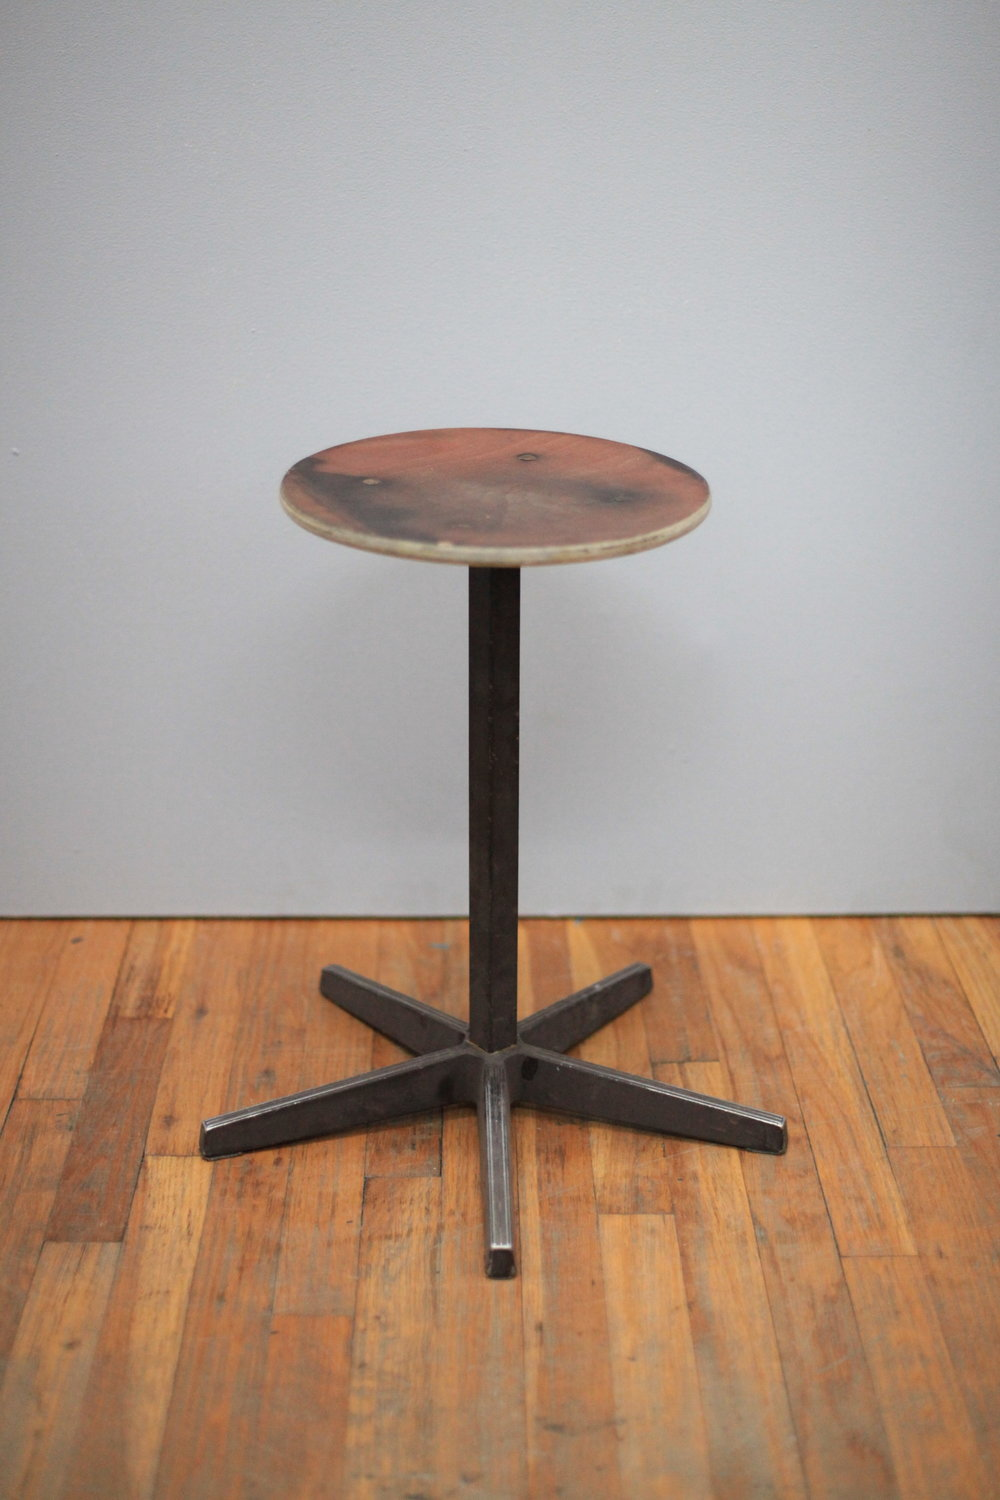 ST018  Wood with metal asterisk base stool  Made in Holland  $150